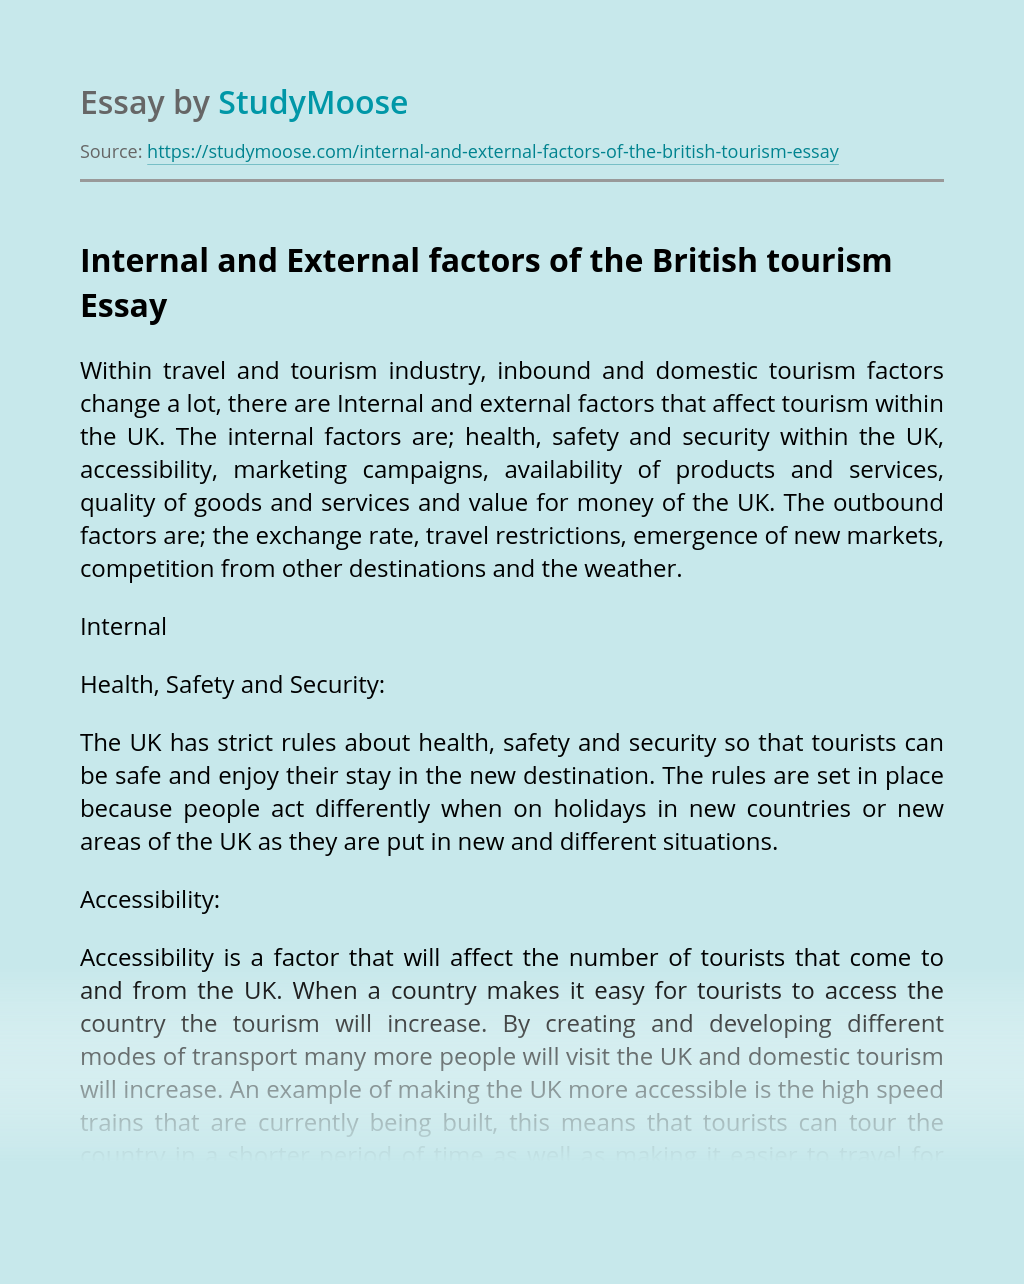 Internal and External factors of the British tourism